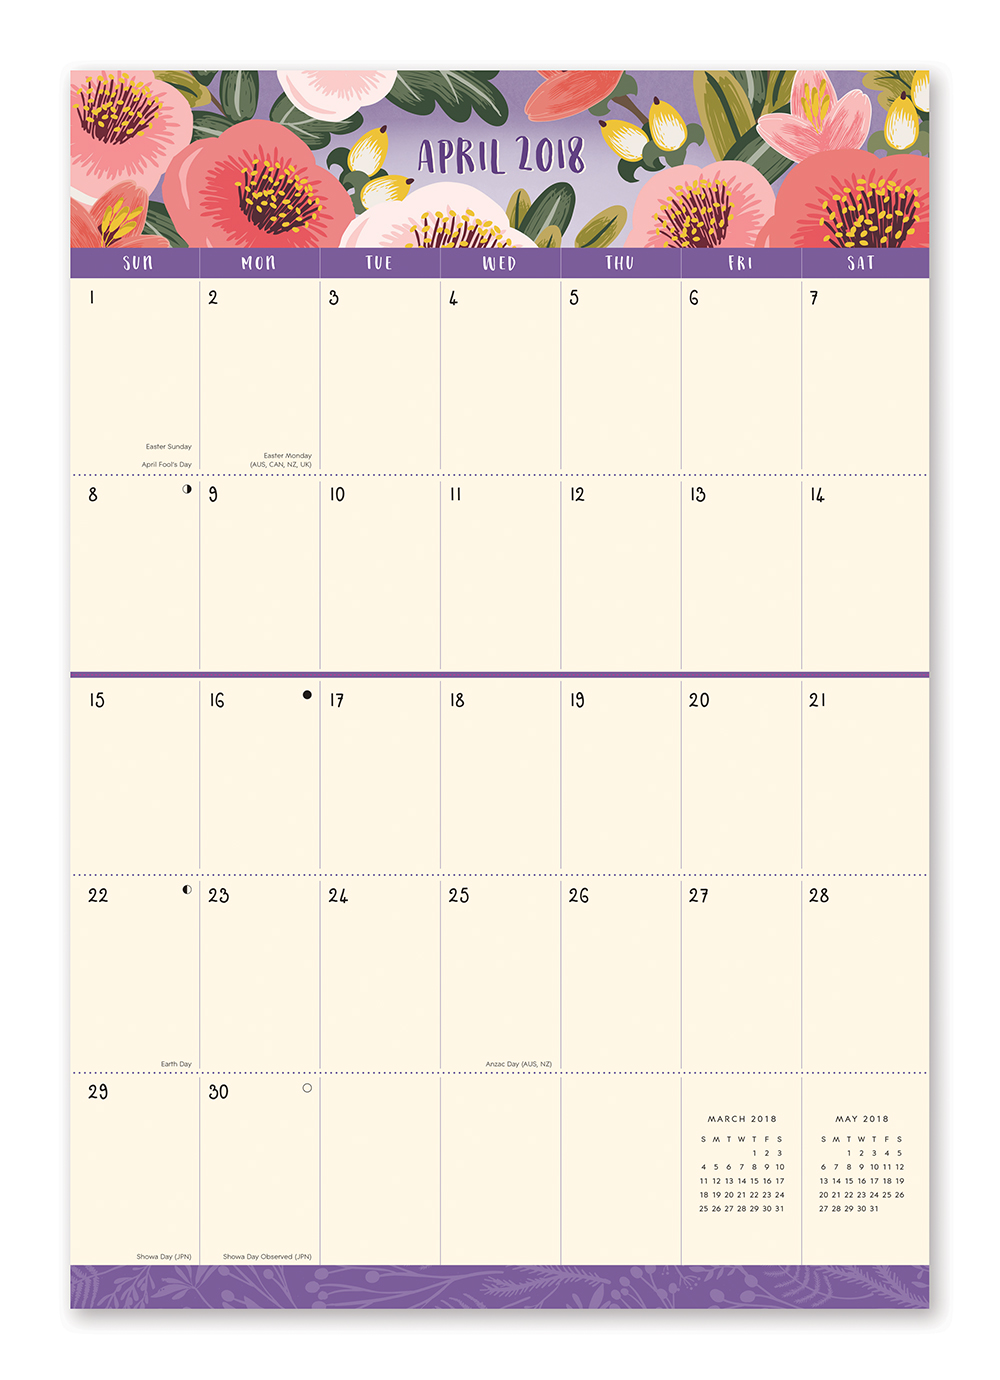 Bold Blossoms Do it All Wall Calendar 2018 by Orange Circle Studio inside 9781682581858